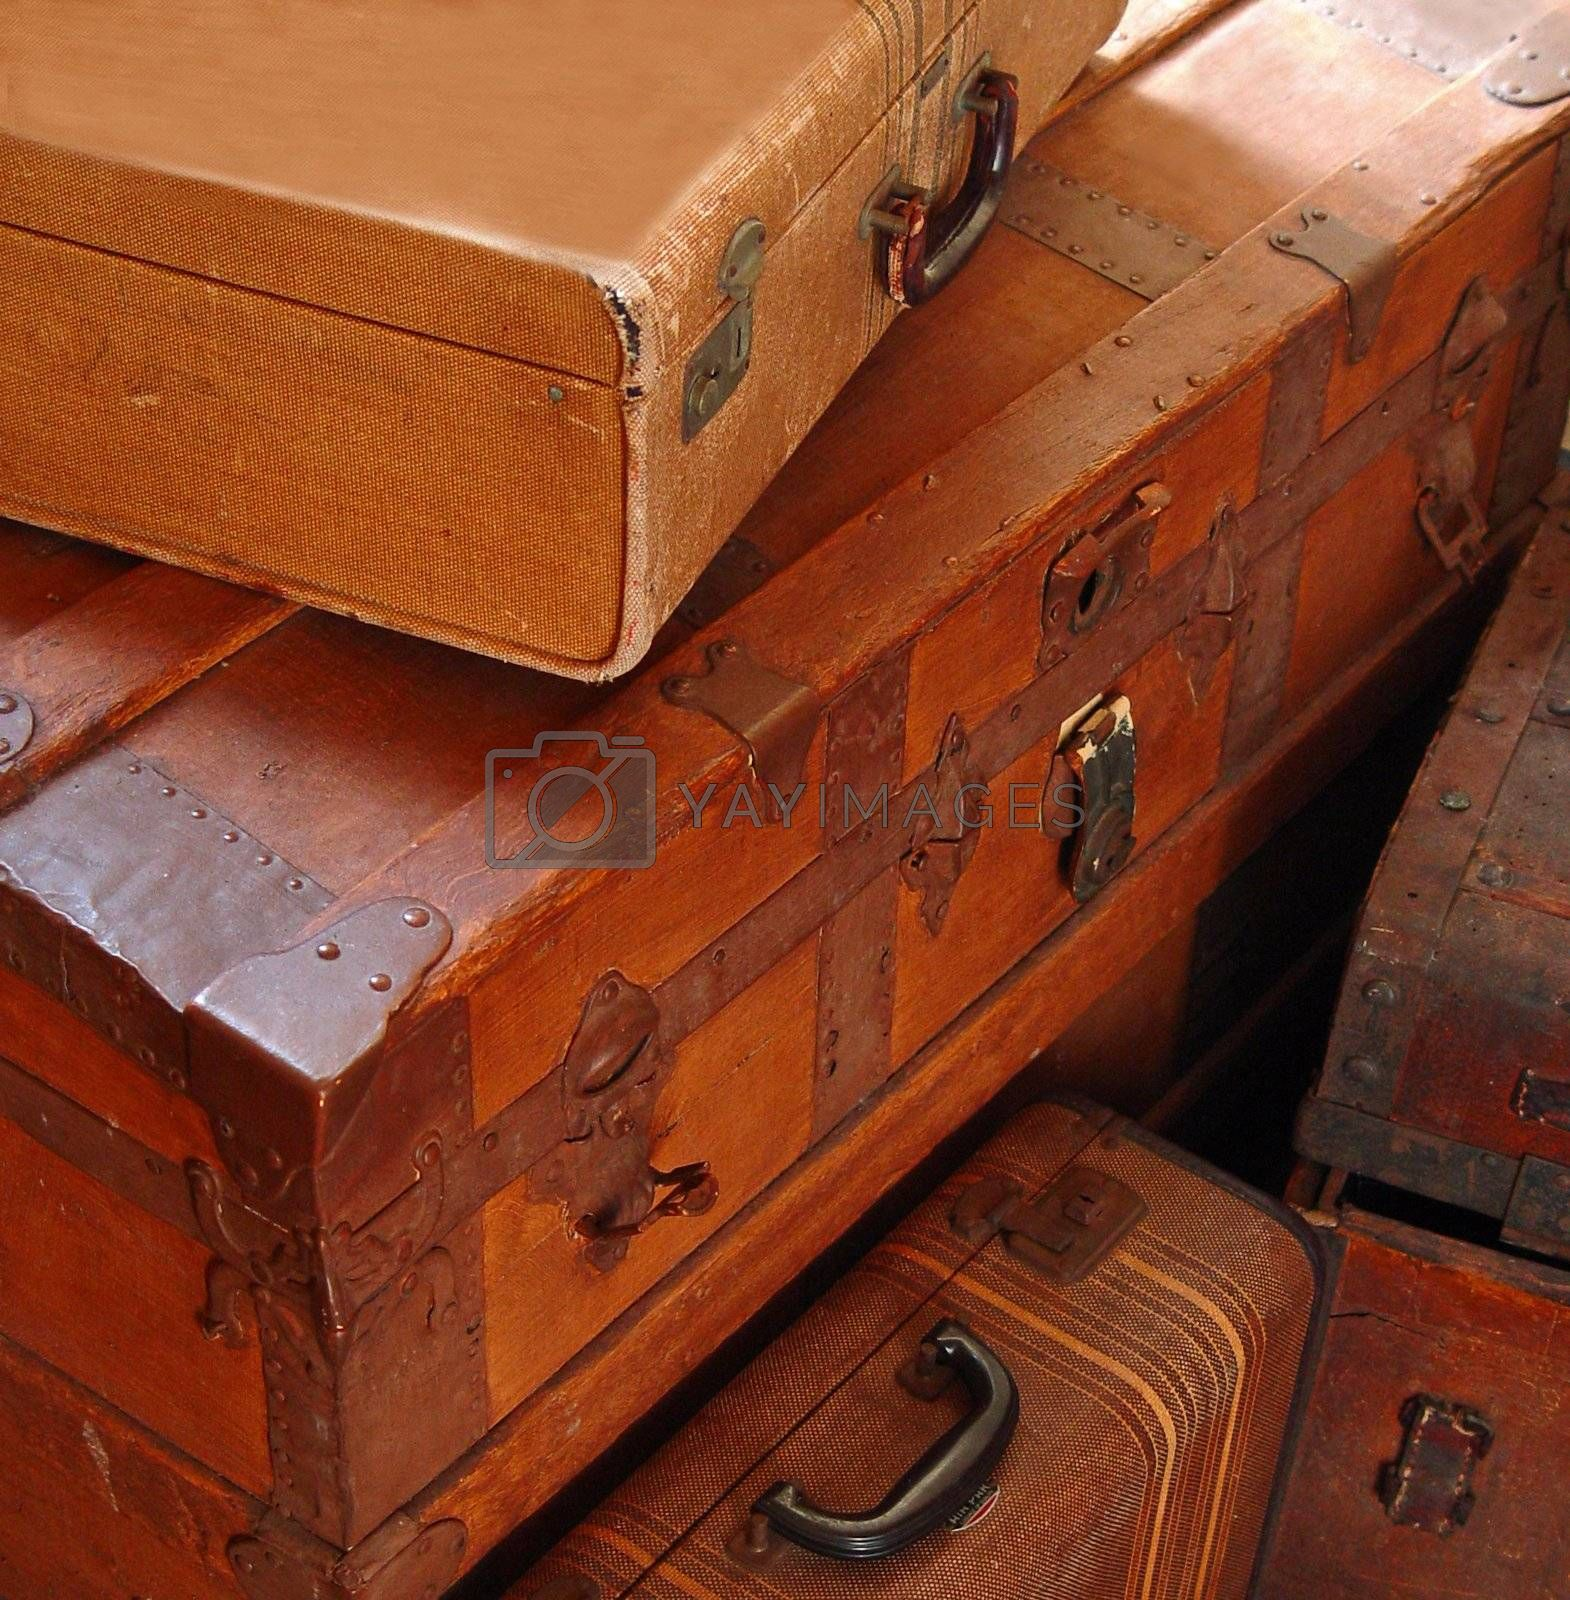 Antique travel trunks by Markjay